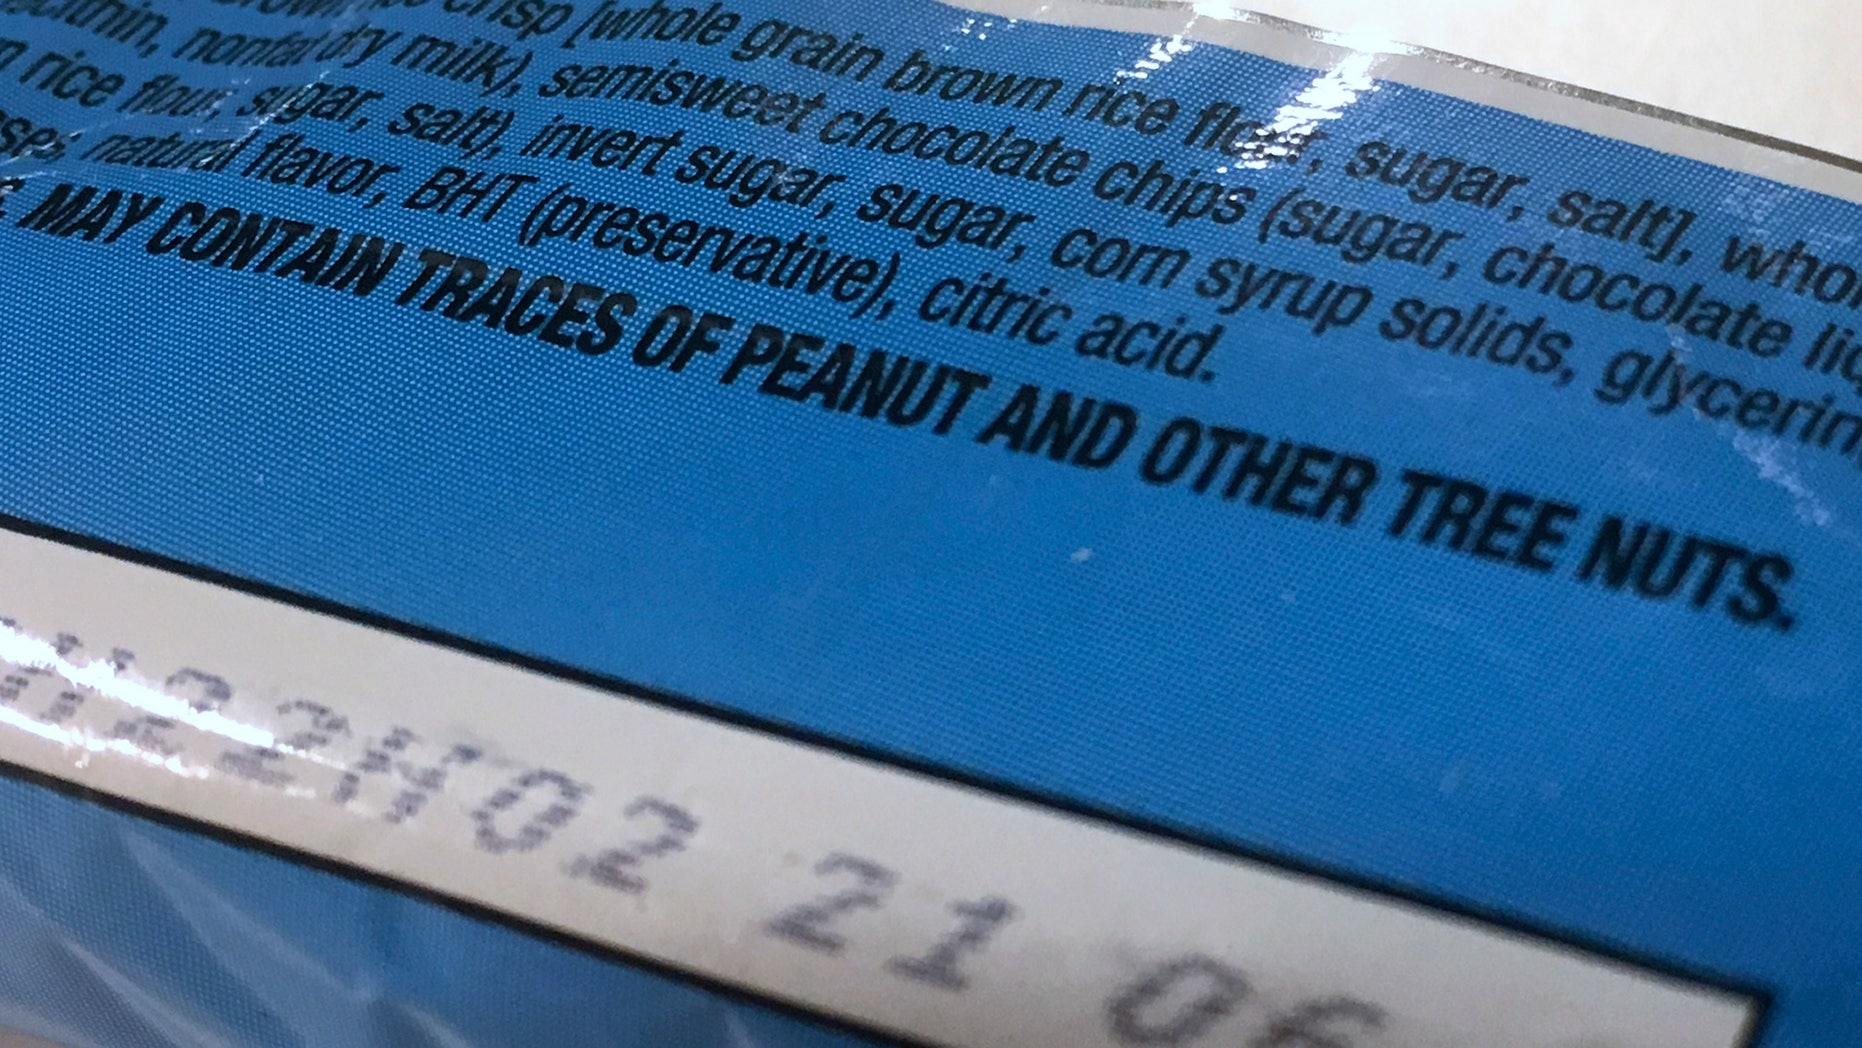 """This Nov. 30, 2016, photo shows part of a food label that states the product """"may contain traces of peanut and other tree nuts"""" as photographed in Washington. A new report says the hodgepodge of warnings that a food might accidentally contain a troublesome ingredient is confusing to people with food allergies, and calls for a makeover. The report from the prestigious National Academies of Sciences, Engineering and Medicine said it's time for regulators and the food industry to clear consumer confusion with labels that better reflect the level of risk. (AP Photo/Jon Elswick)"""